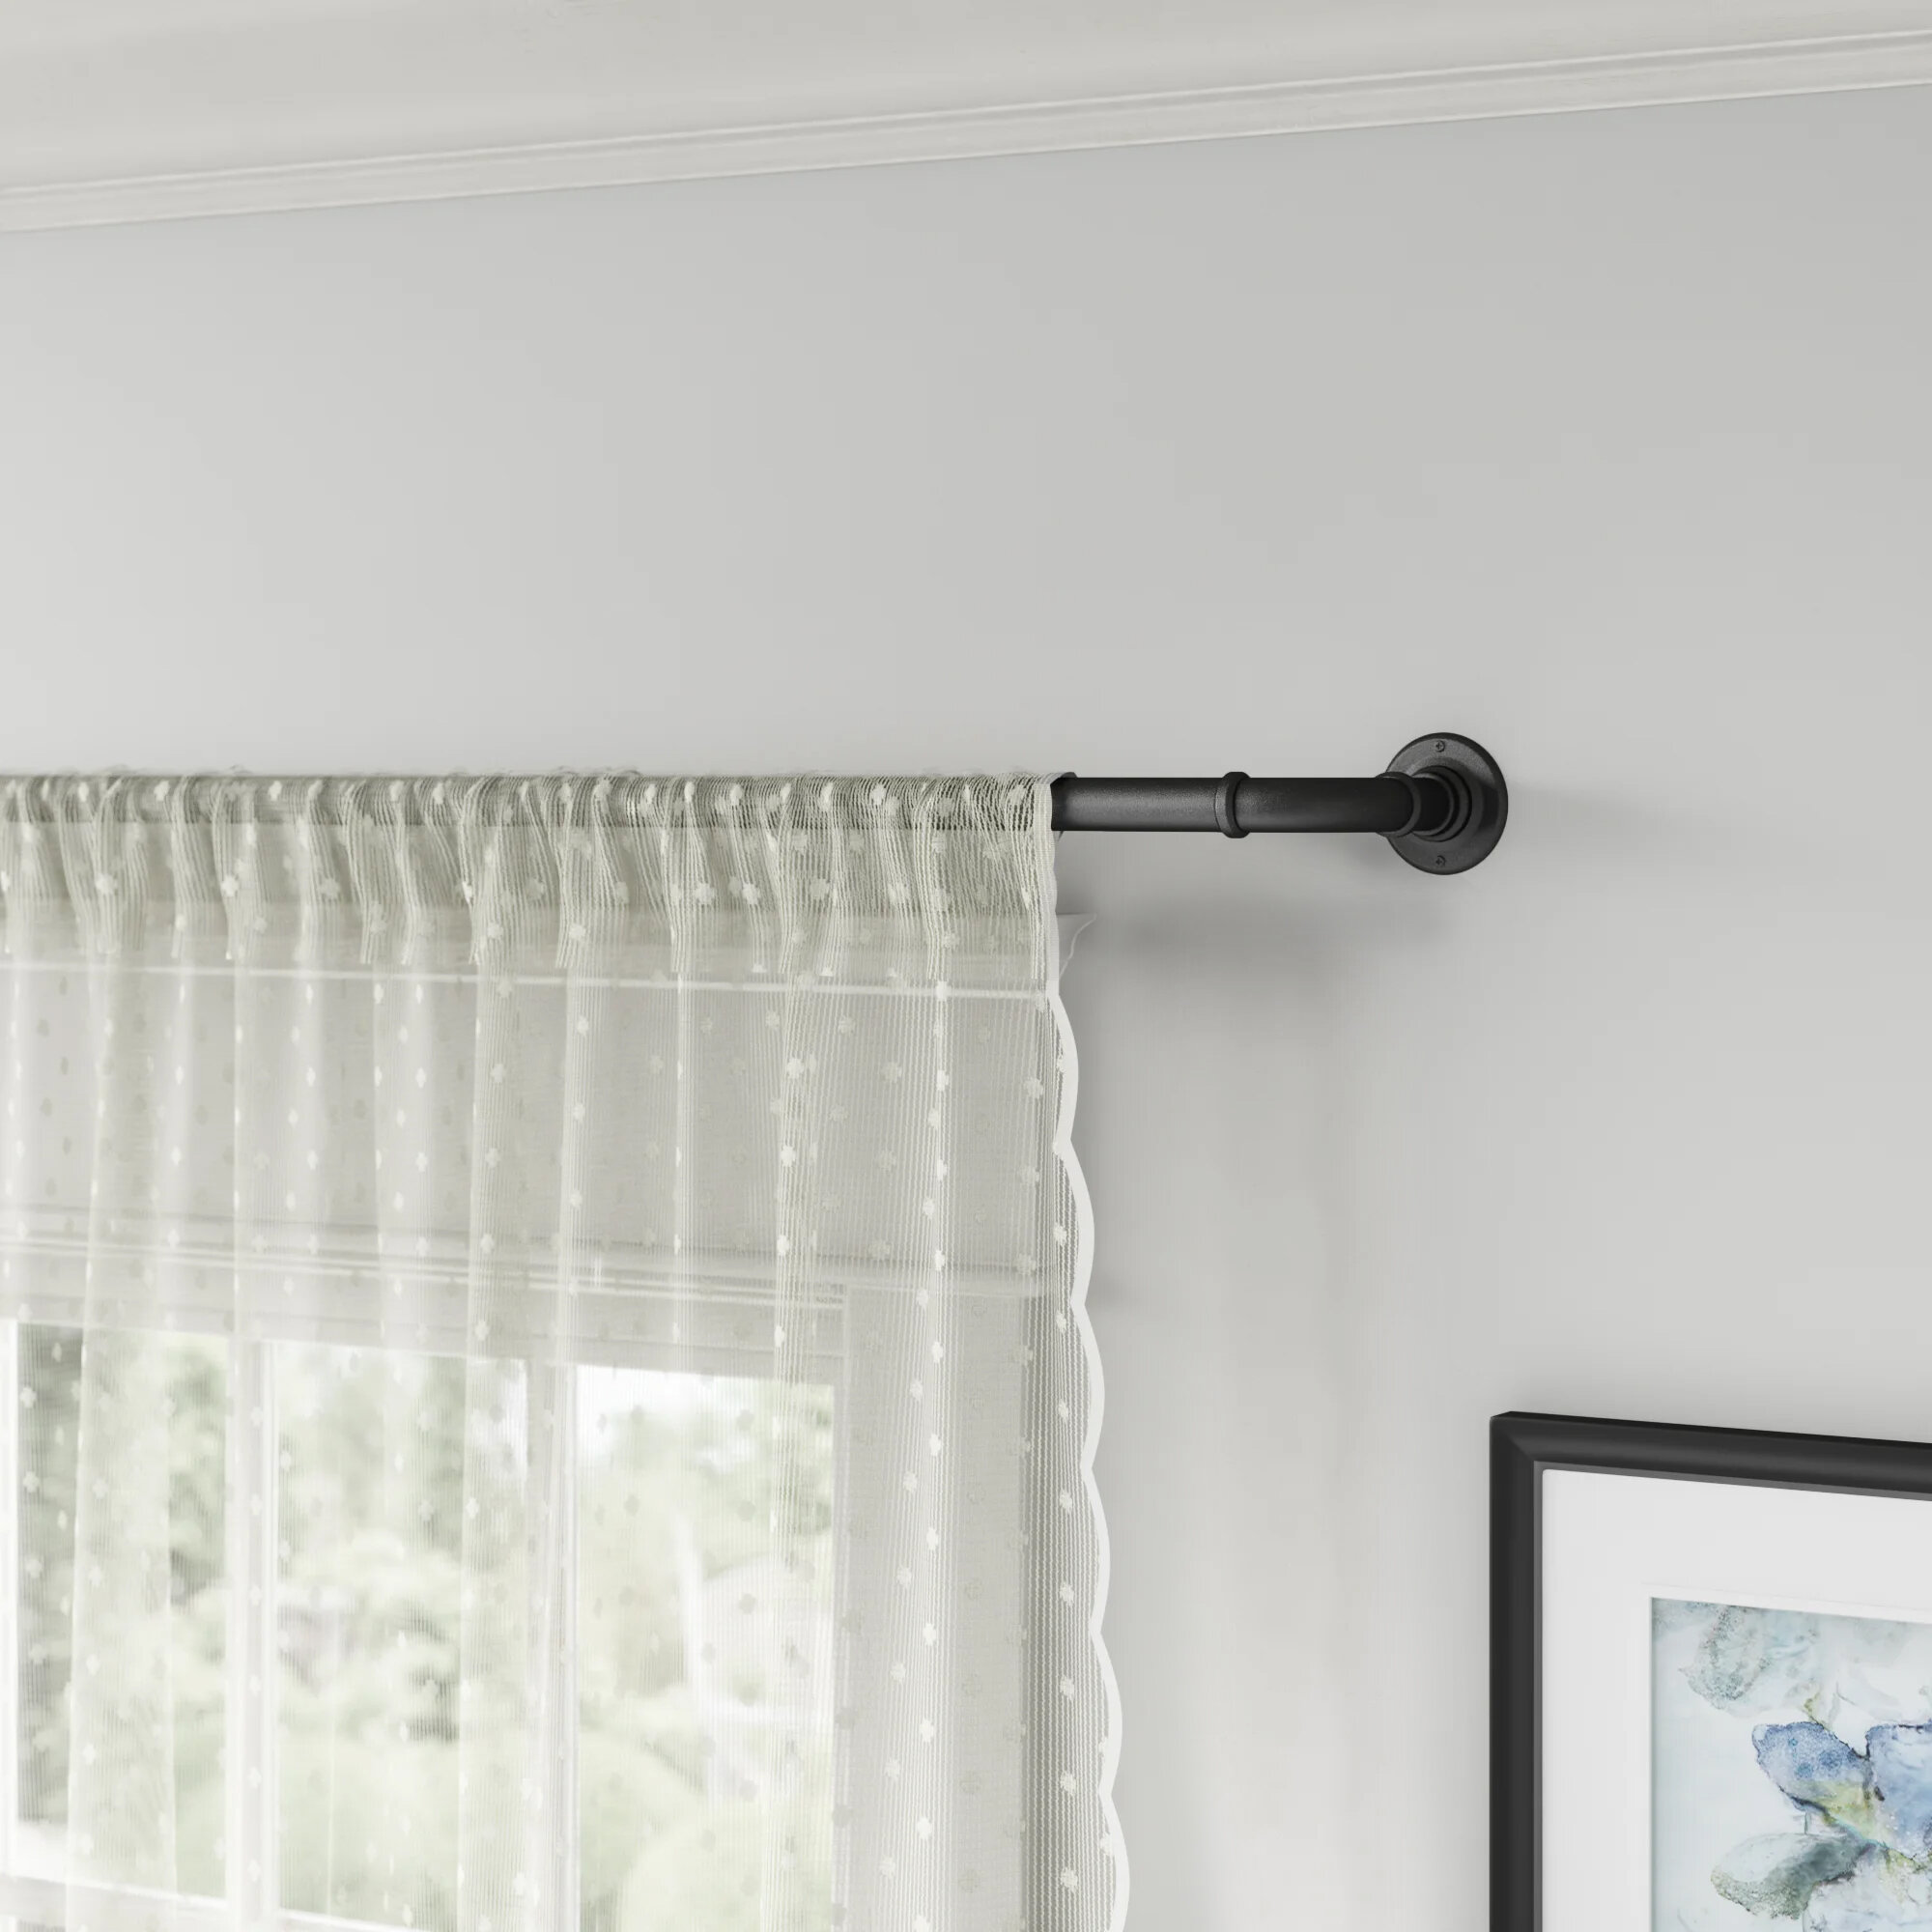 3 Inch Rod Curtain Hardware Accessories You Ll Love In 2021 Wayfair